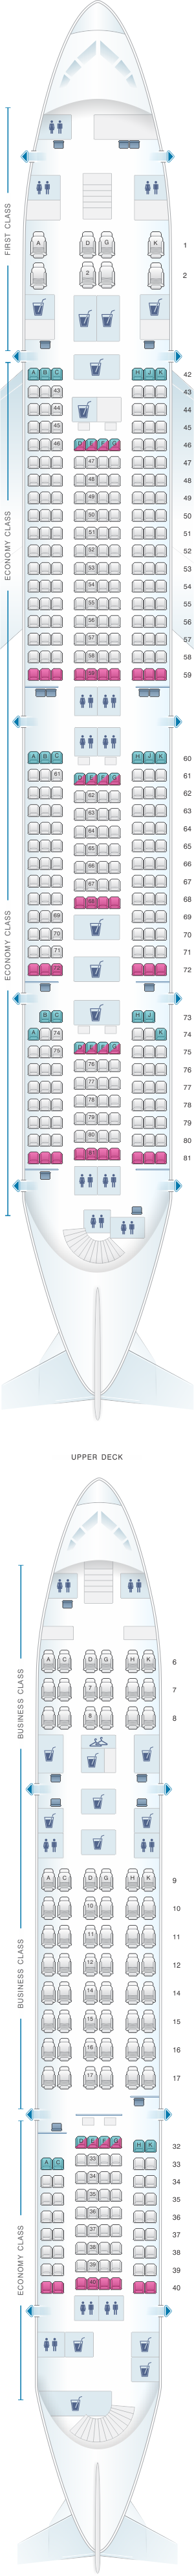 Seat map for Malaysia Airlines Airbus A380 800